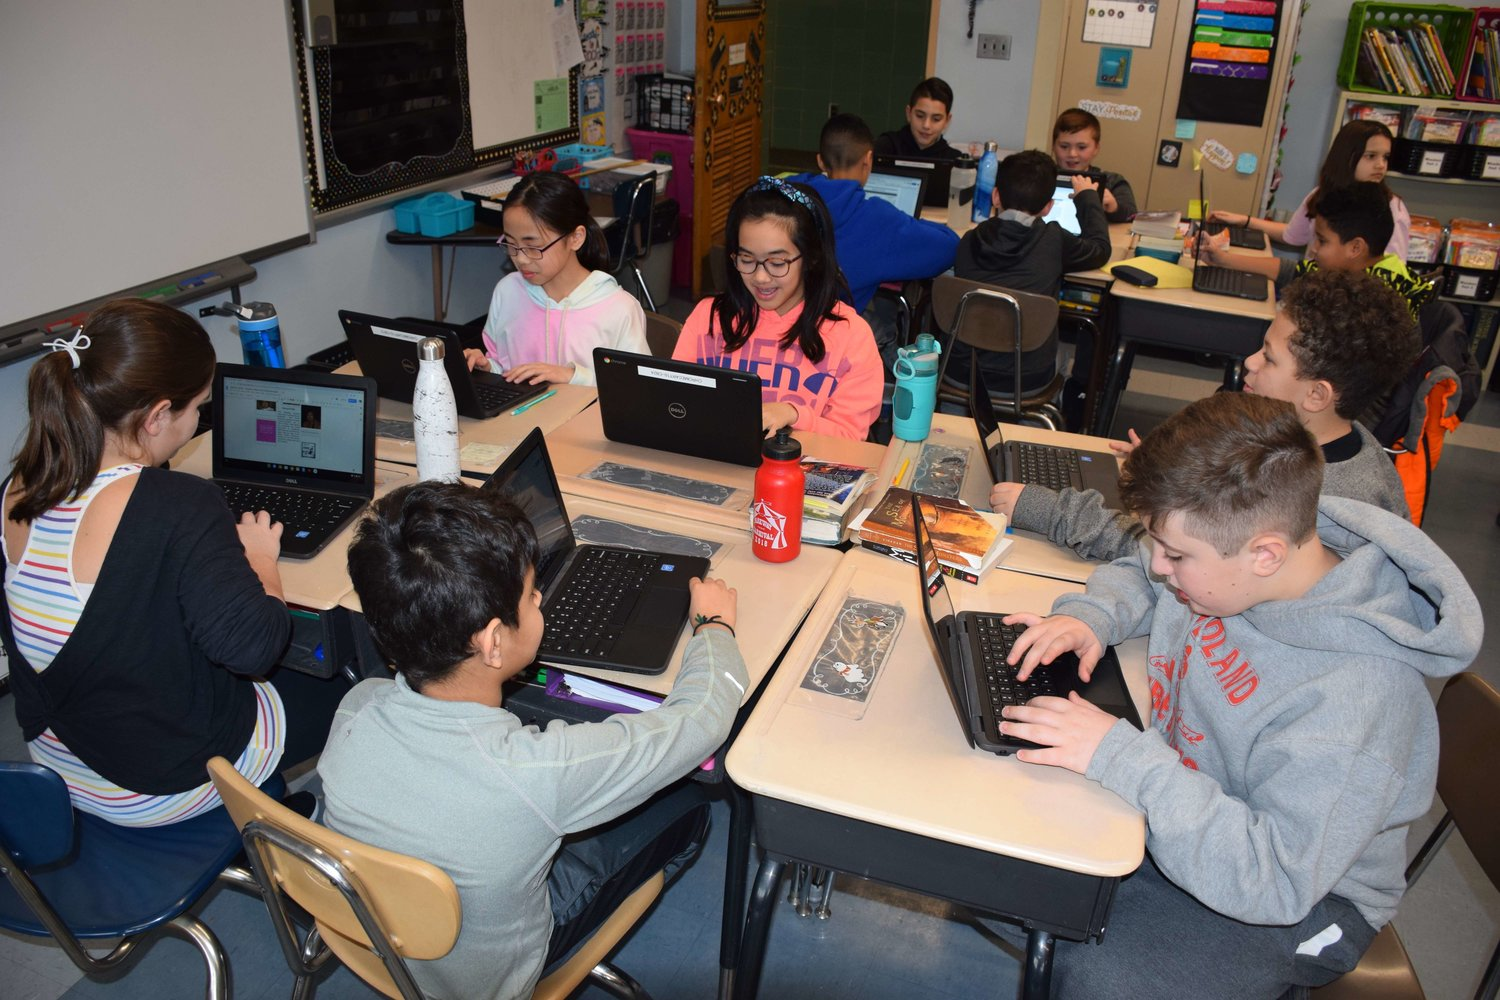 Fifth-grade students at Parkway Elementary School read their peers' projects from Black History Month utilizing Google Chromebooks on March 6.